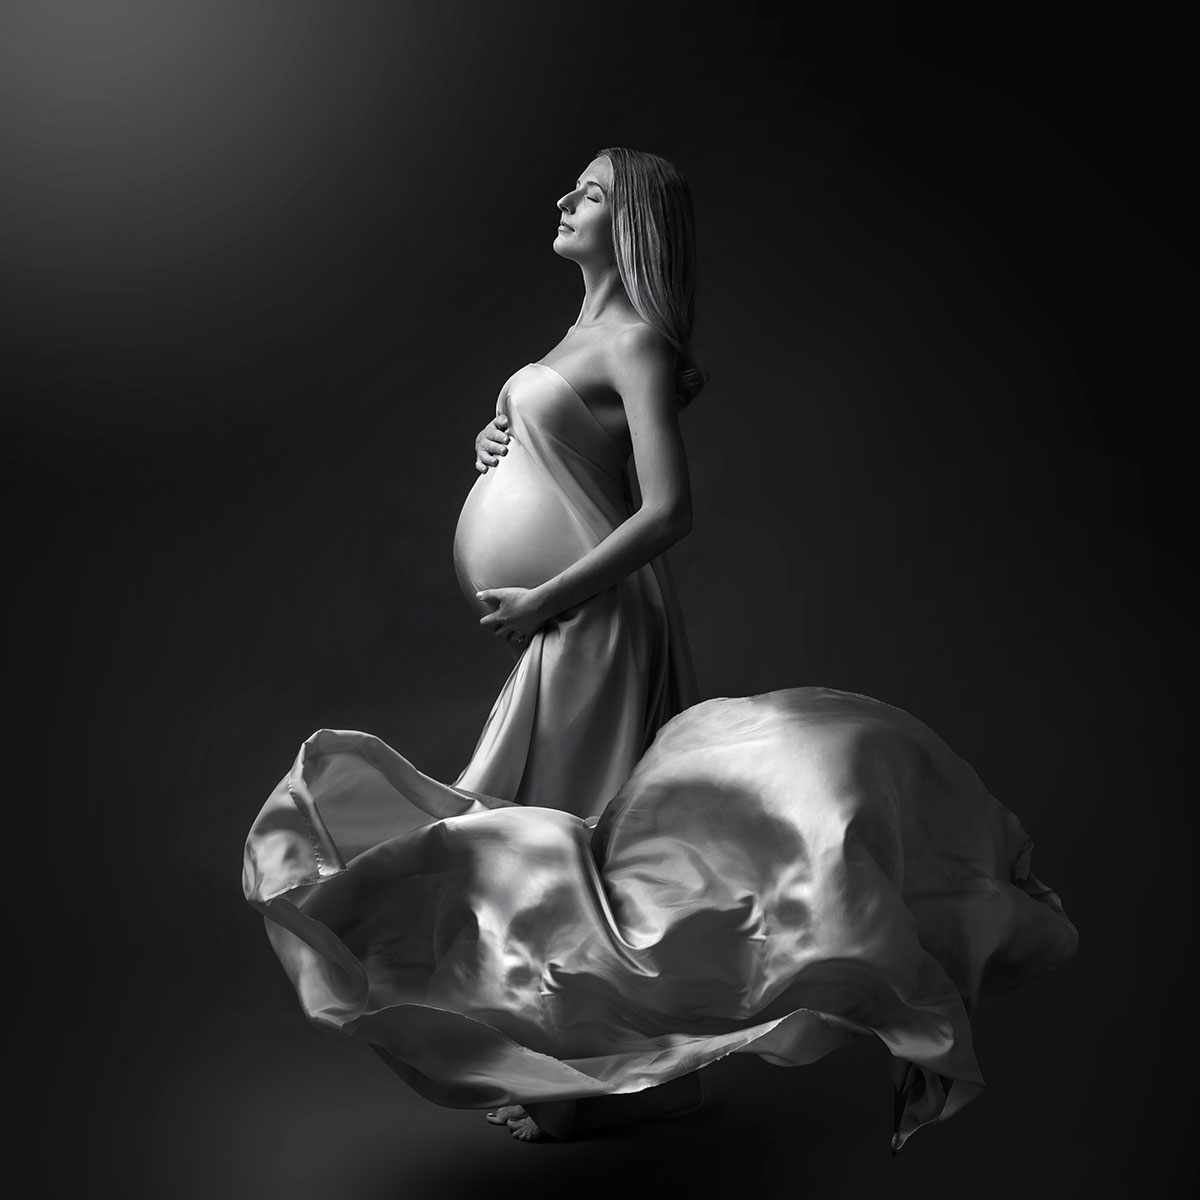 Artistic black and white photo of a woman wearing a flowing maternity fabric